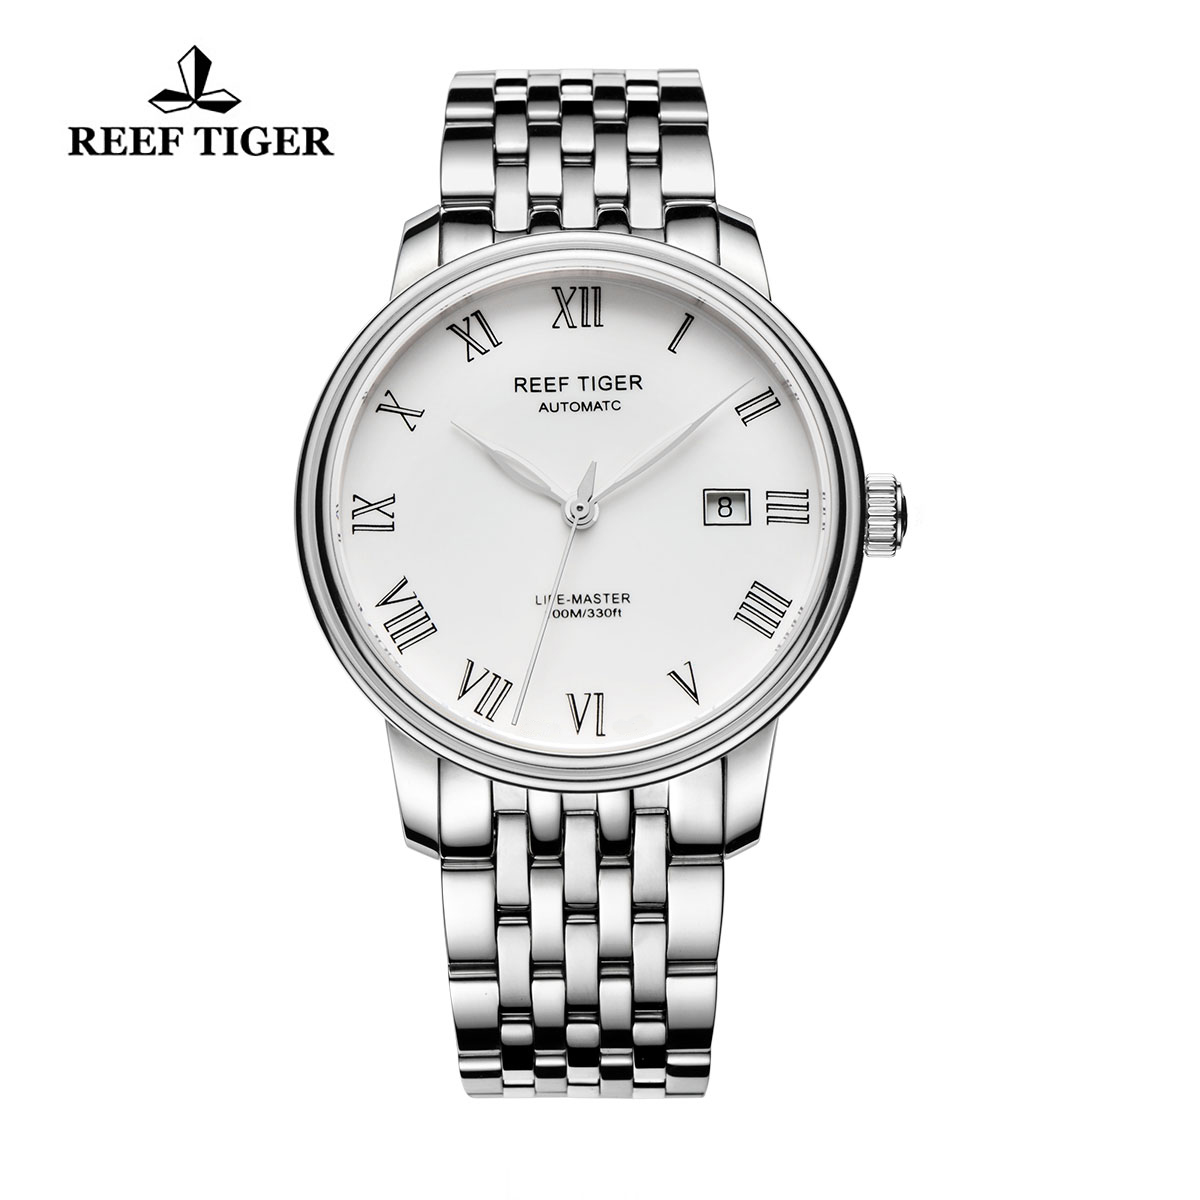 Reef Tiger Life-Master Dress Watch Automatic Full Steel with White Dial RGA812-YWY